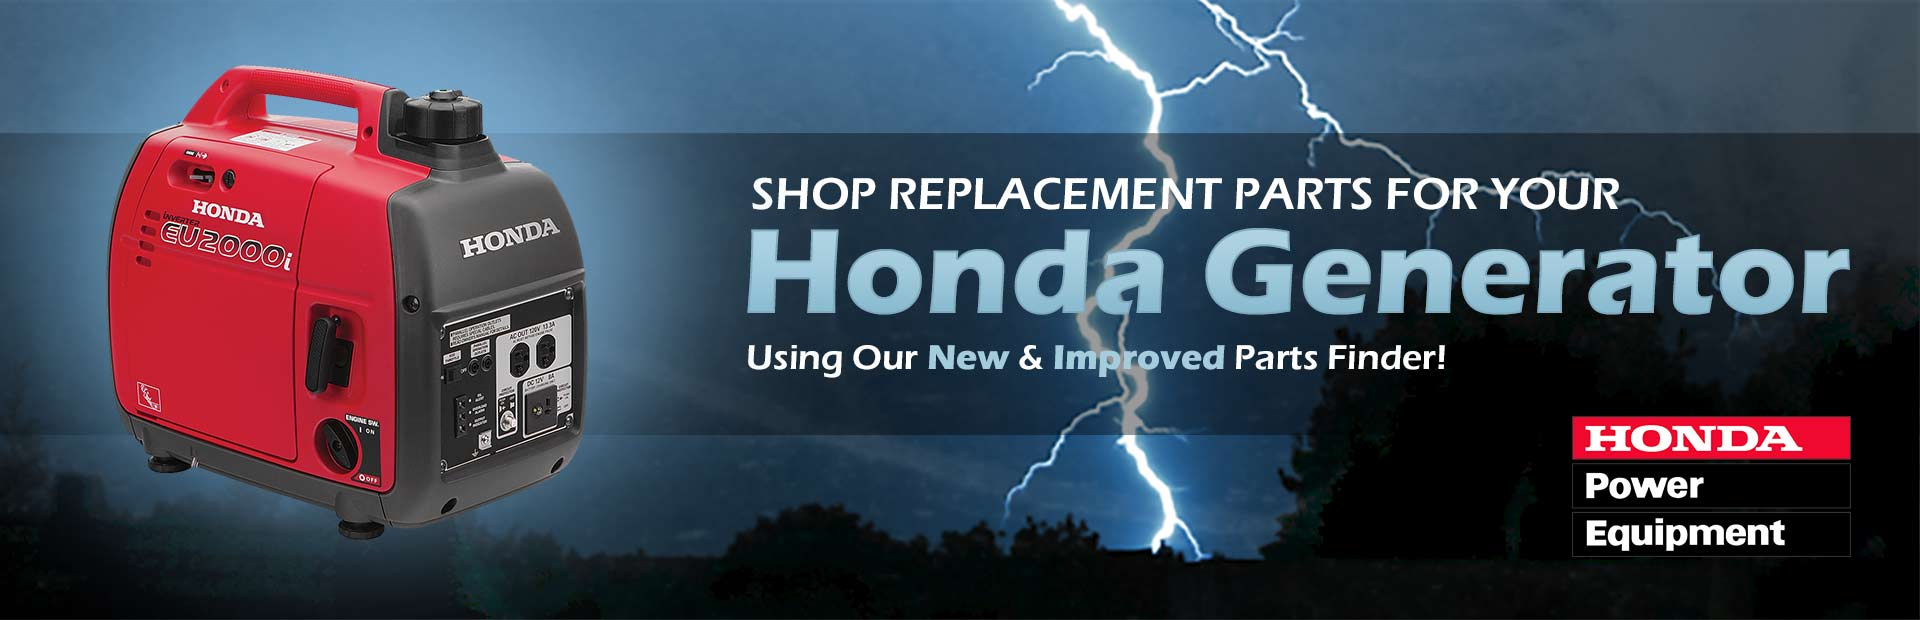 Shop replacement parts for your Honda generator using our new and improved Parts Finder!